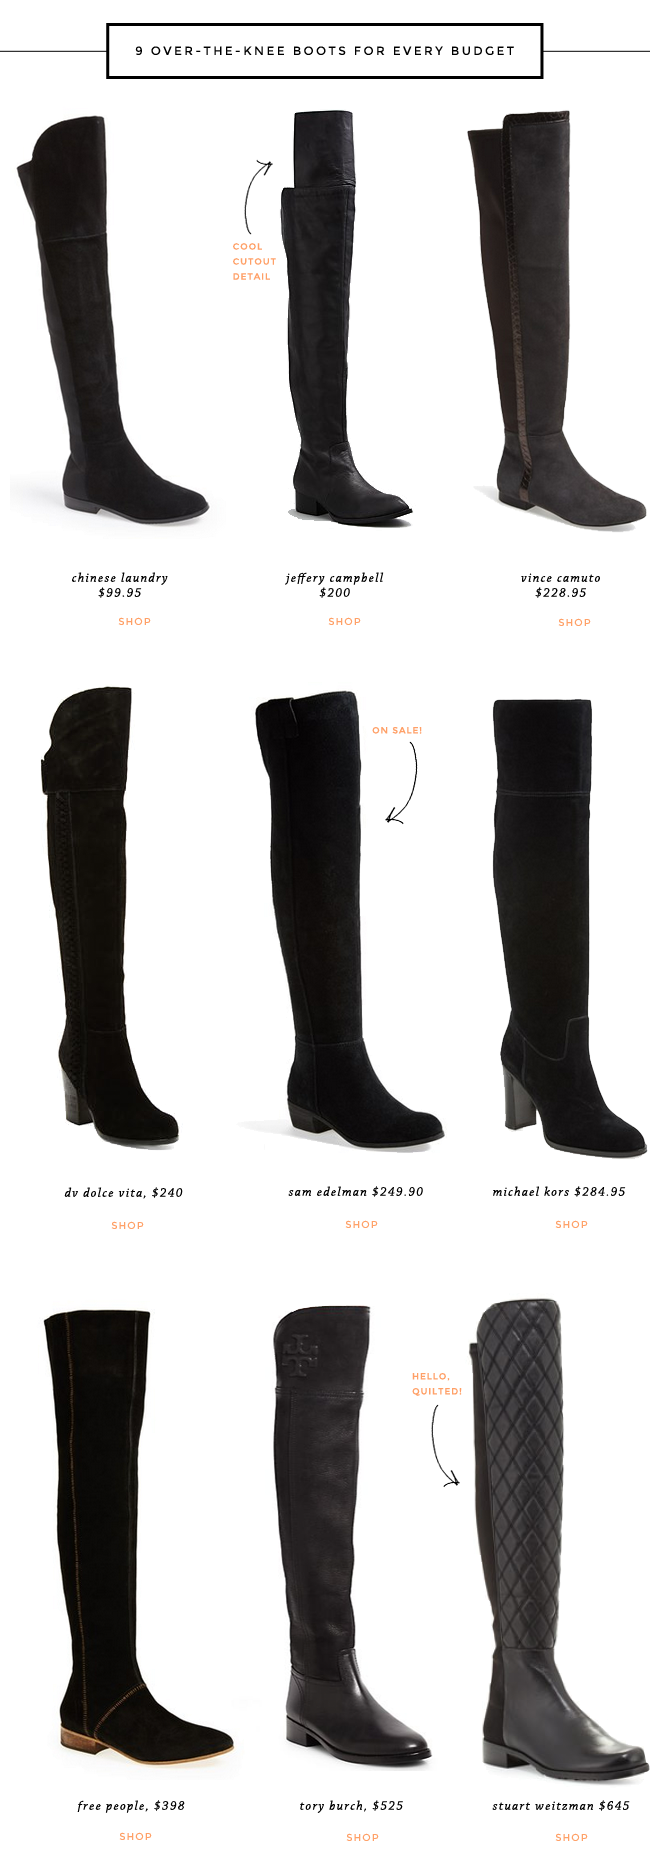 243ea5a9bd4 9 Over-The-Knee Boots